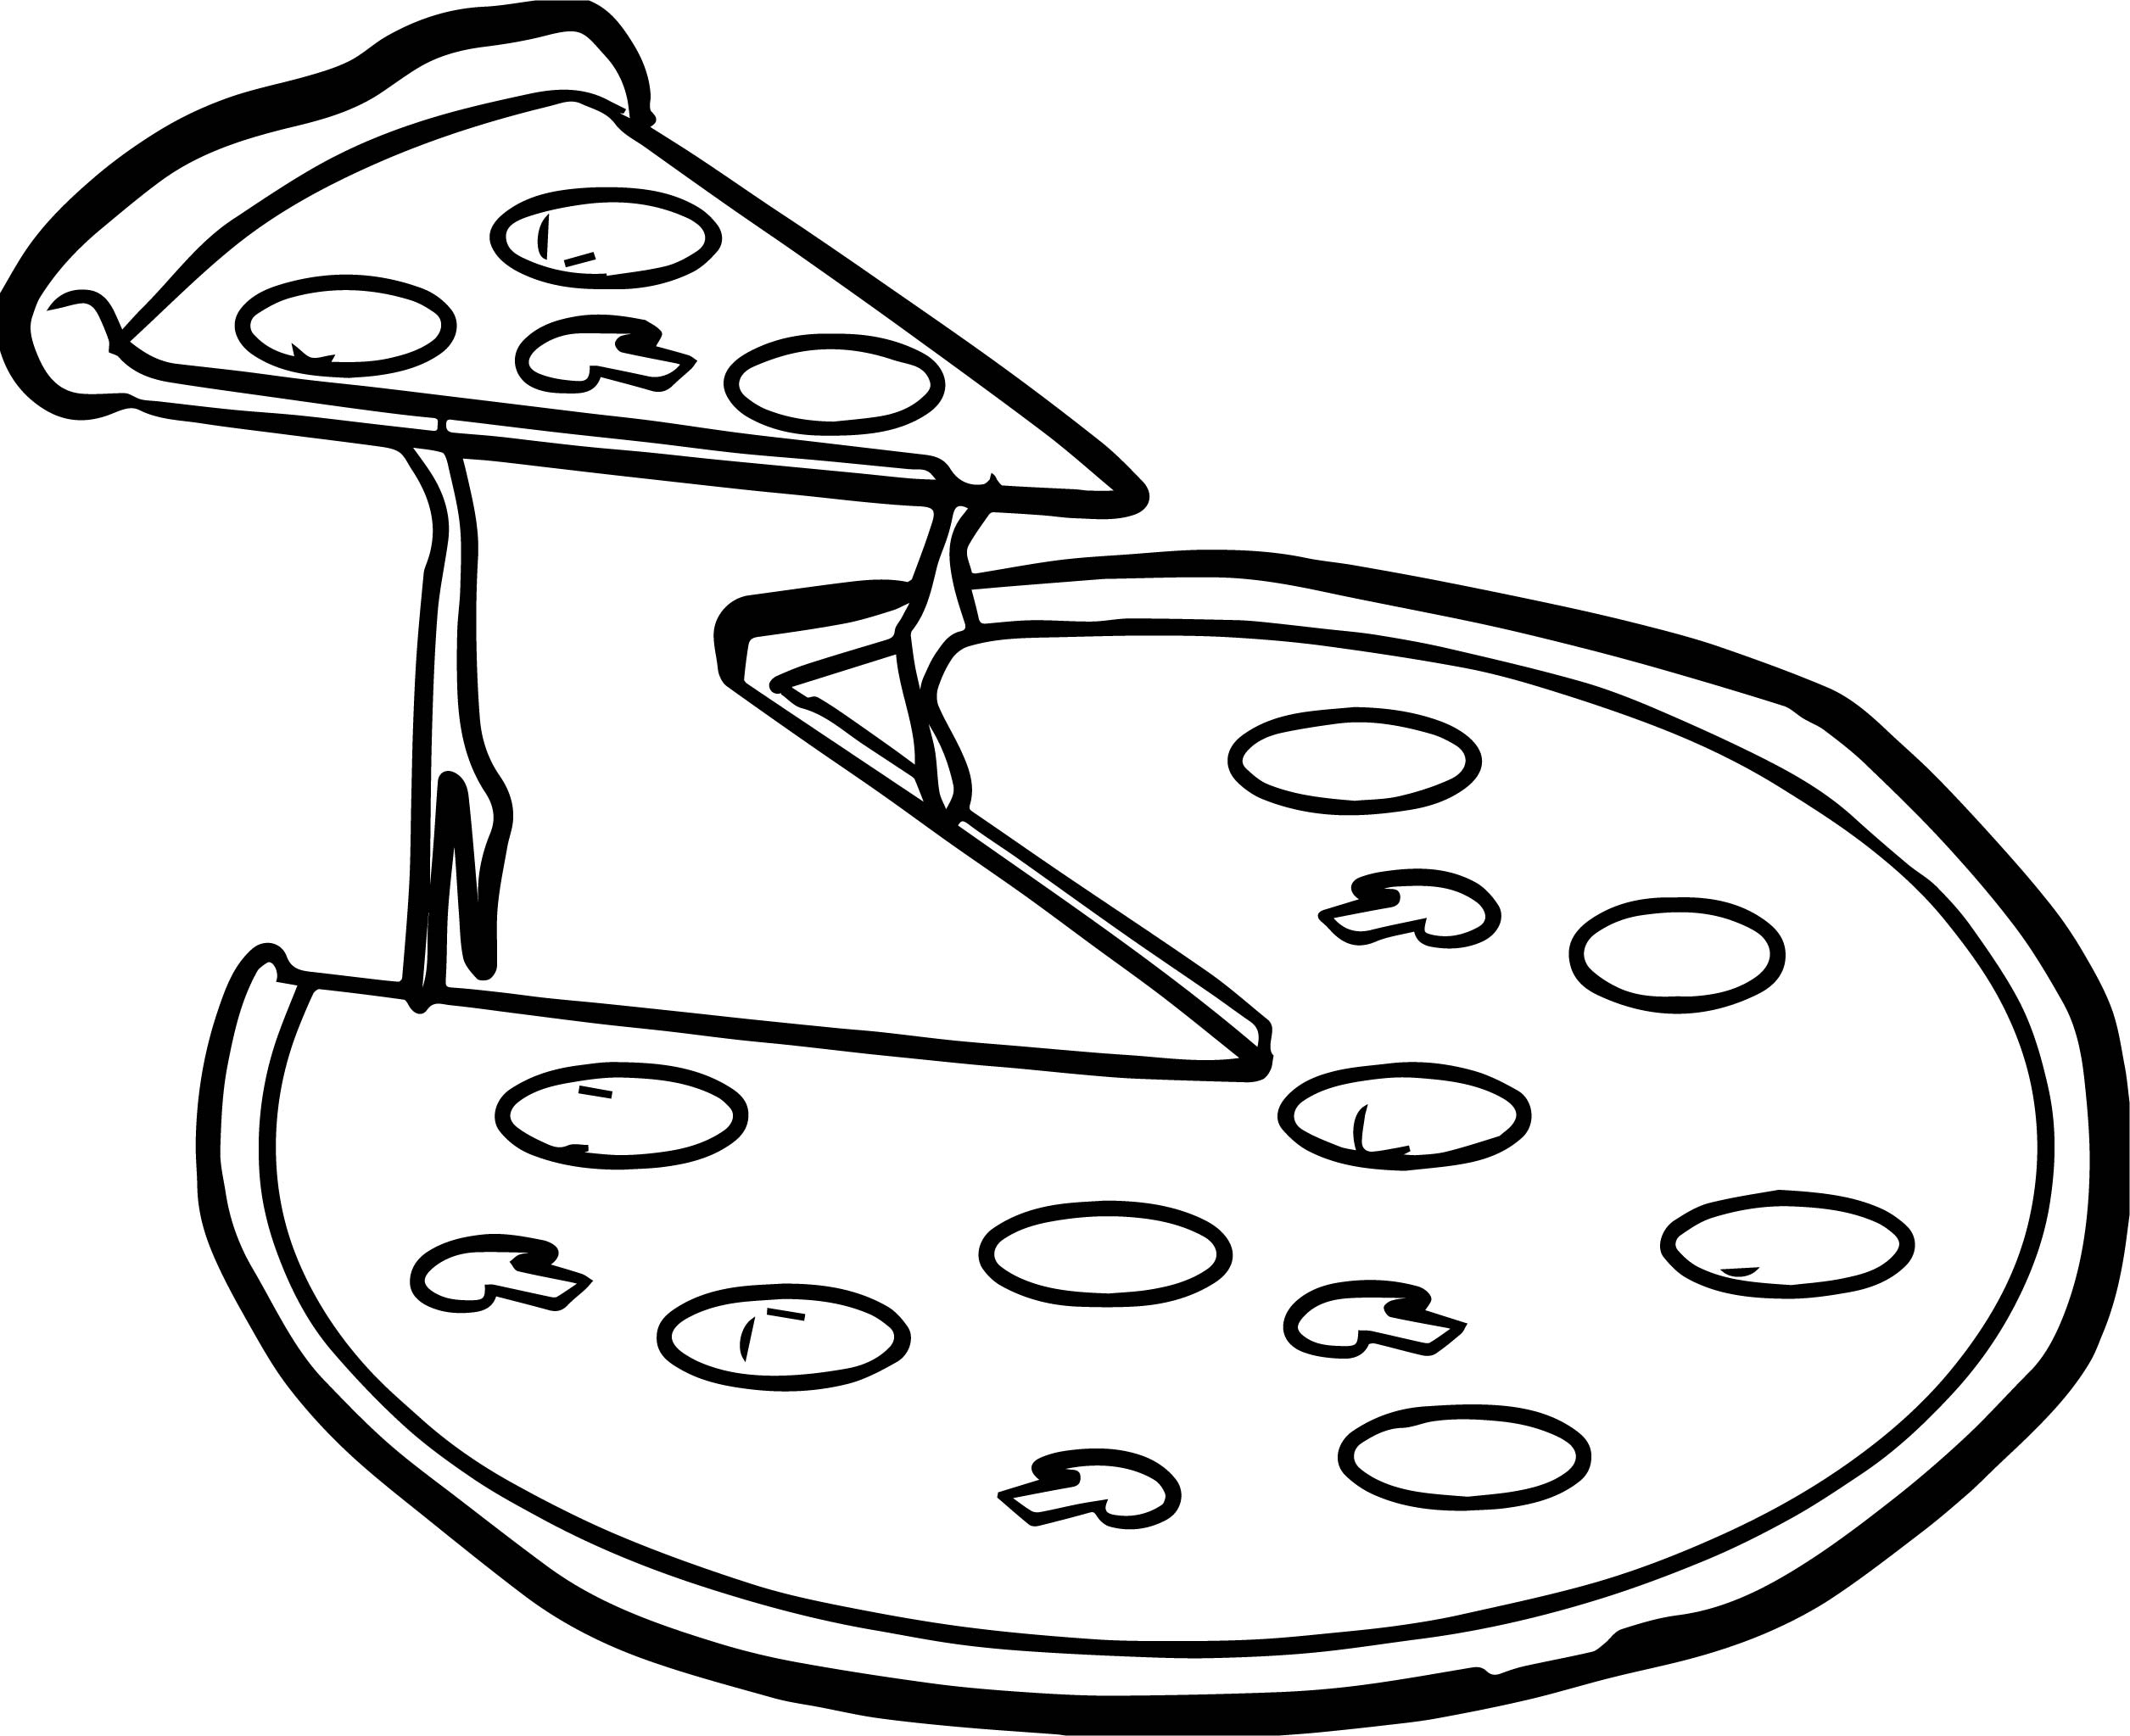 whole pizza coloring page - Pizza Coloring Pages